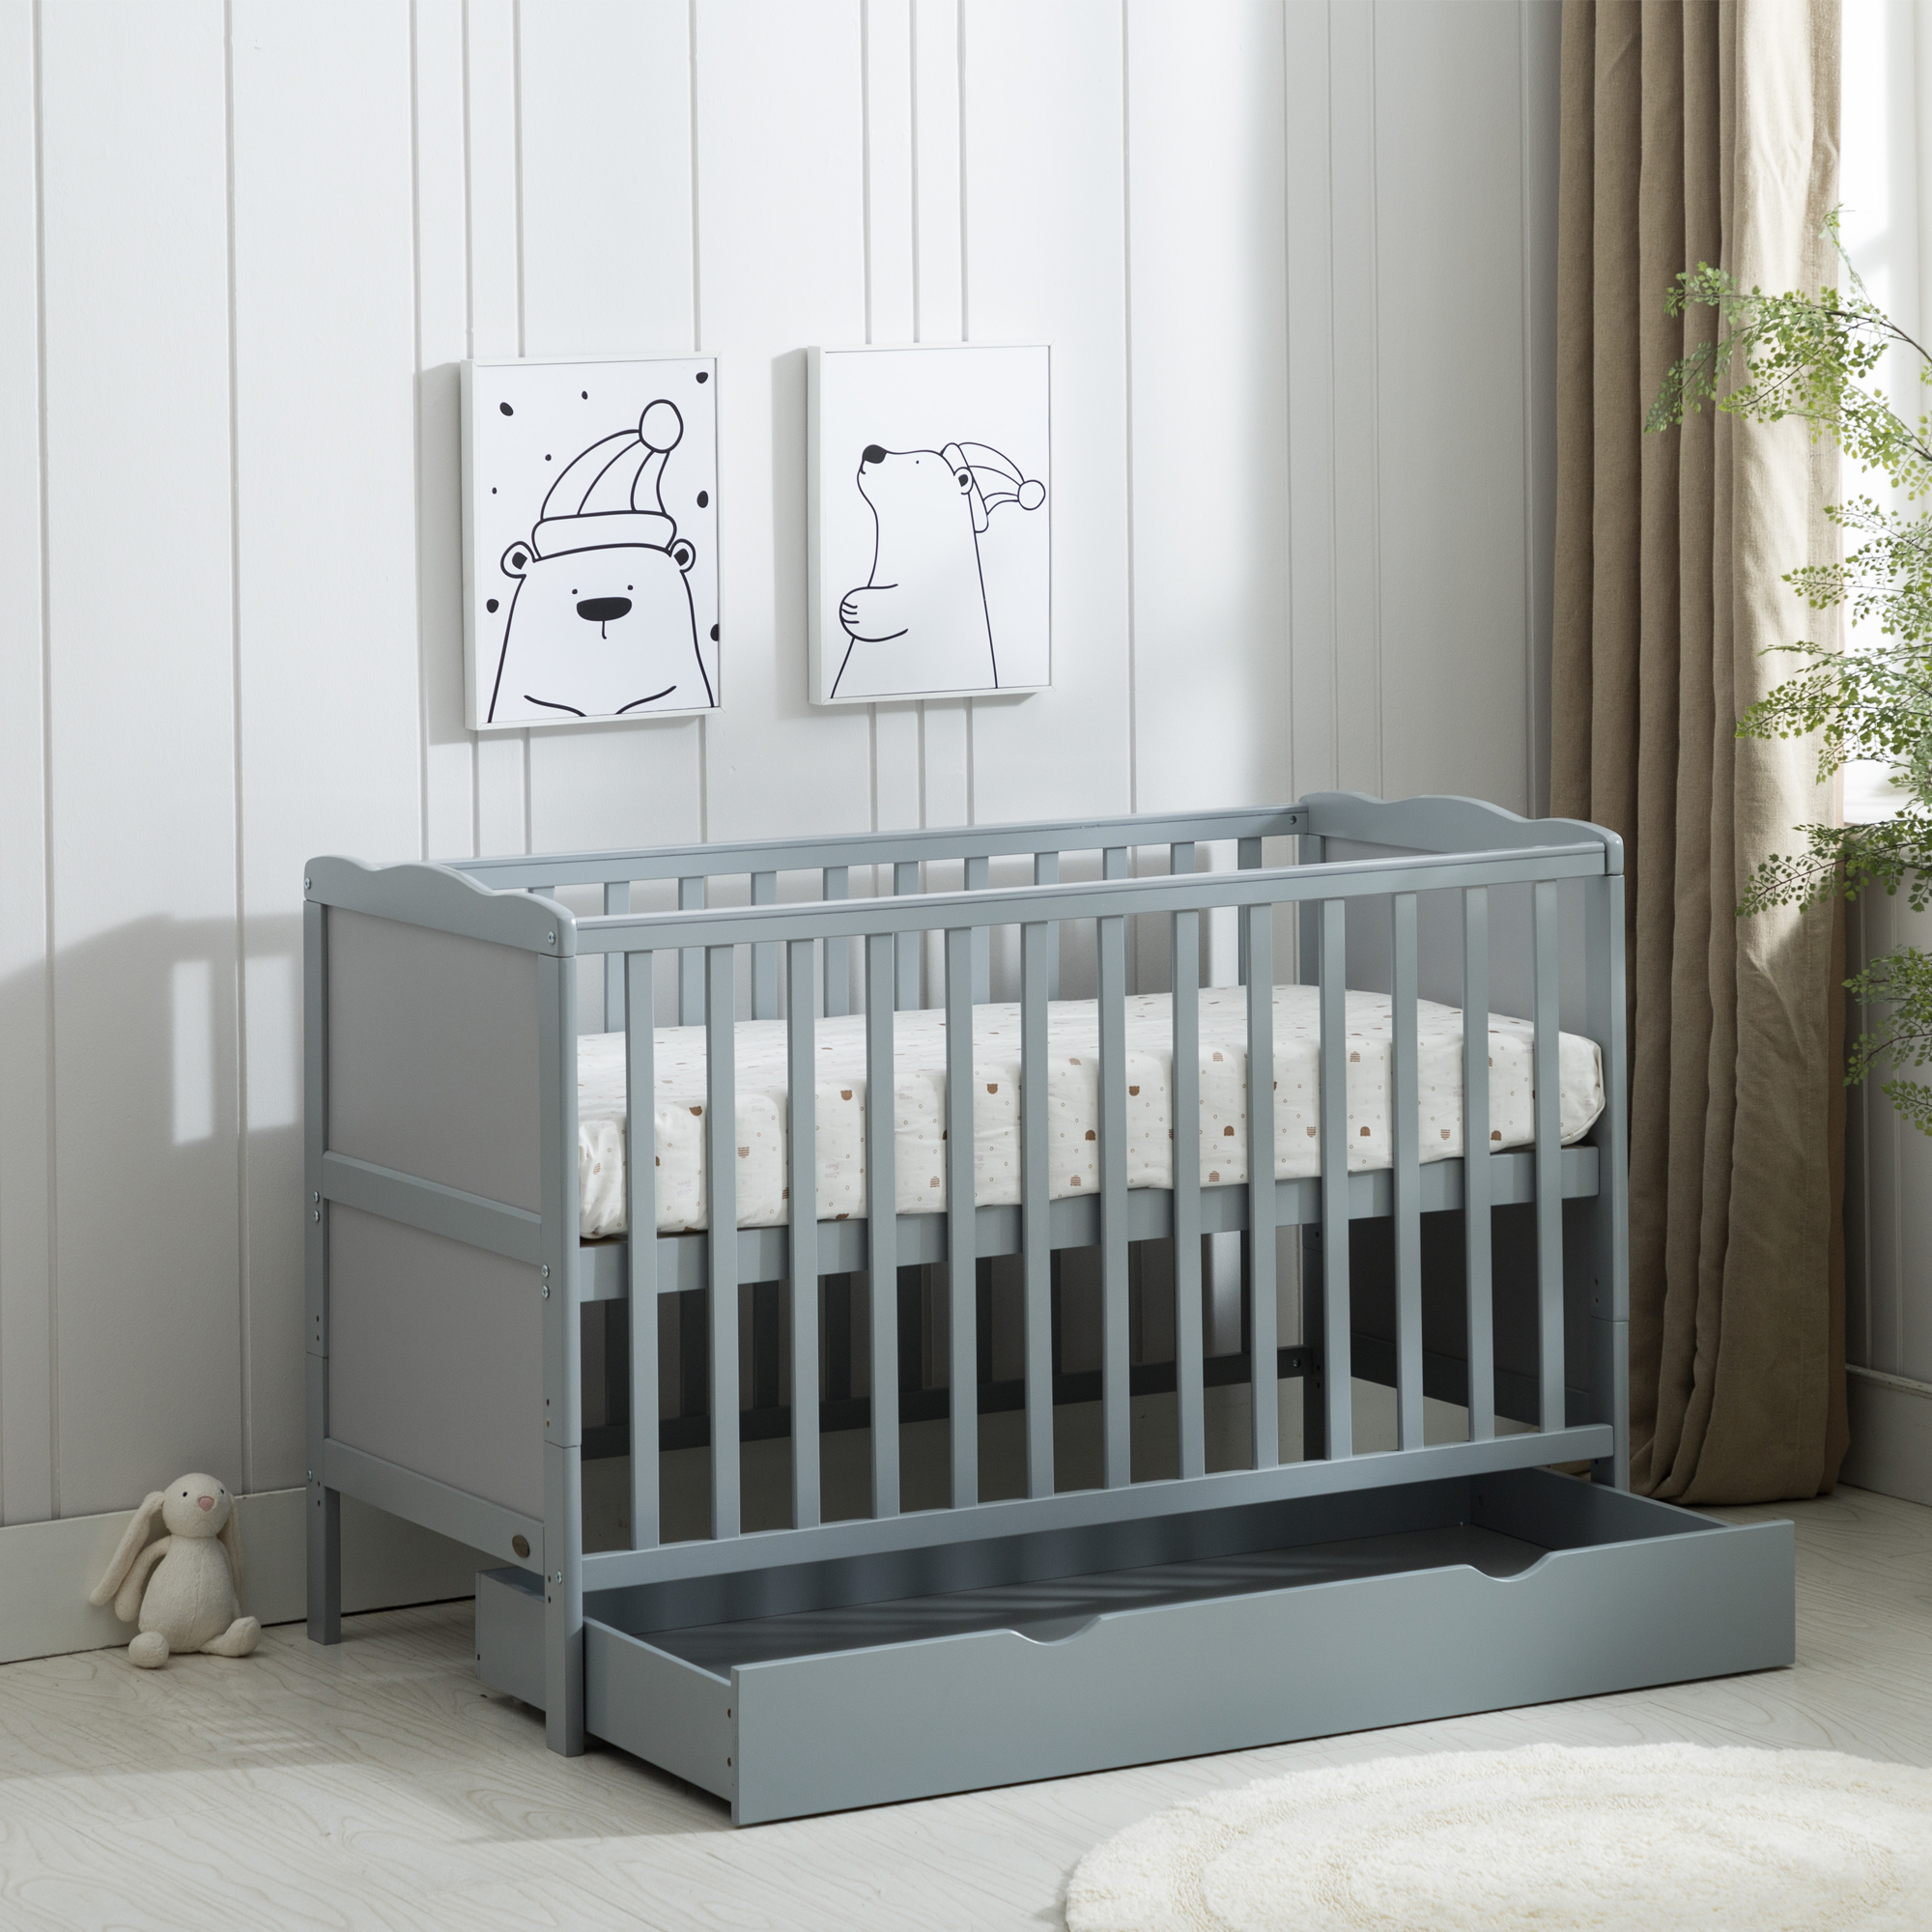 Grey Wooden Baby Cot Bed & Drawer & Aloe Vera Mattress (Orlando Drawer)